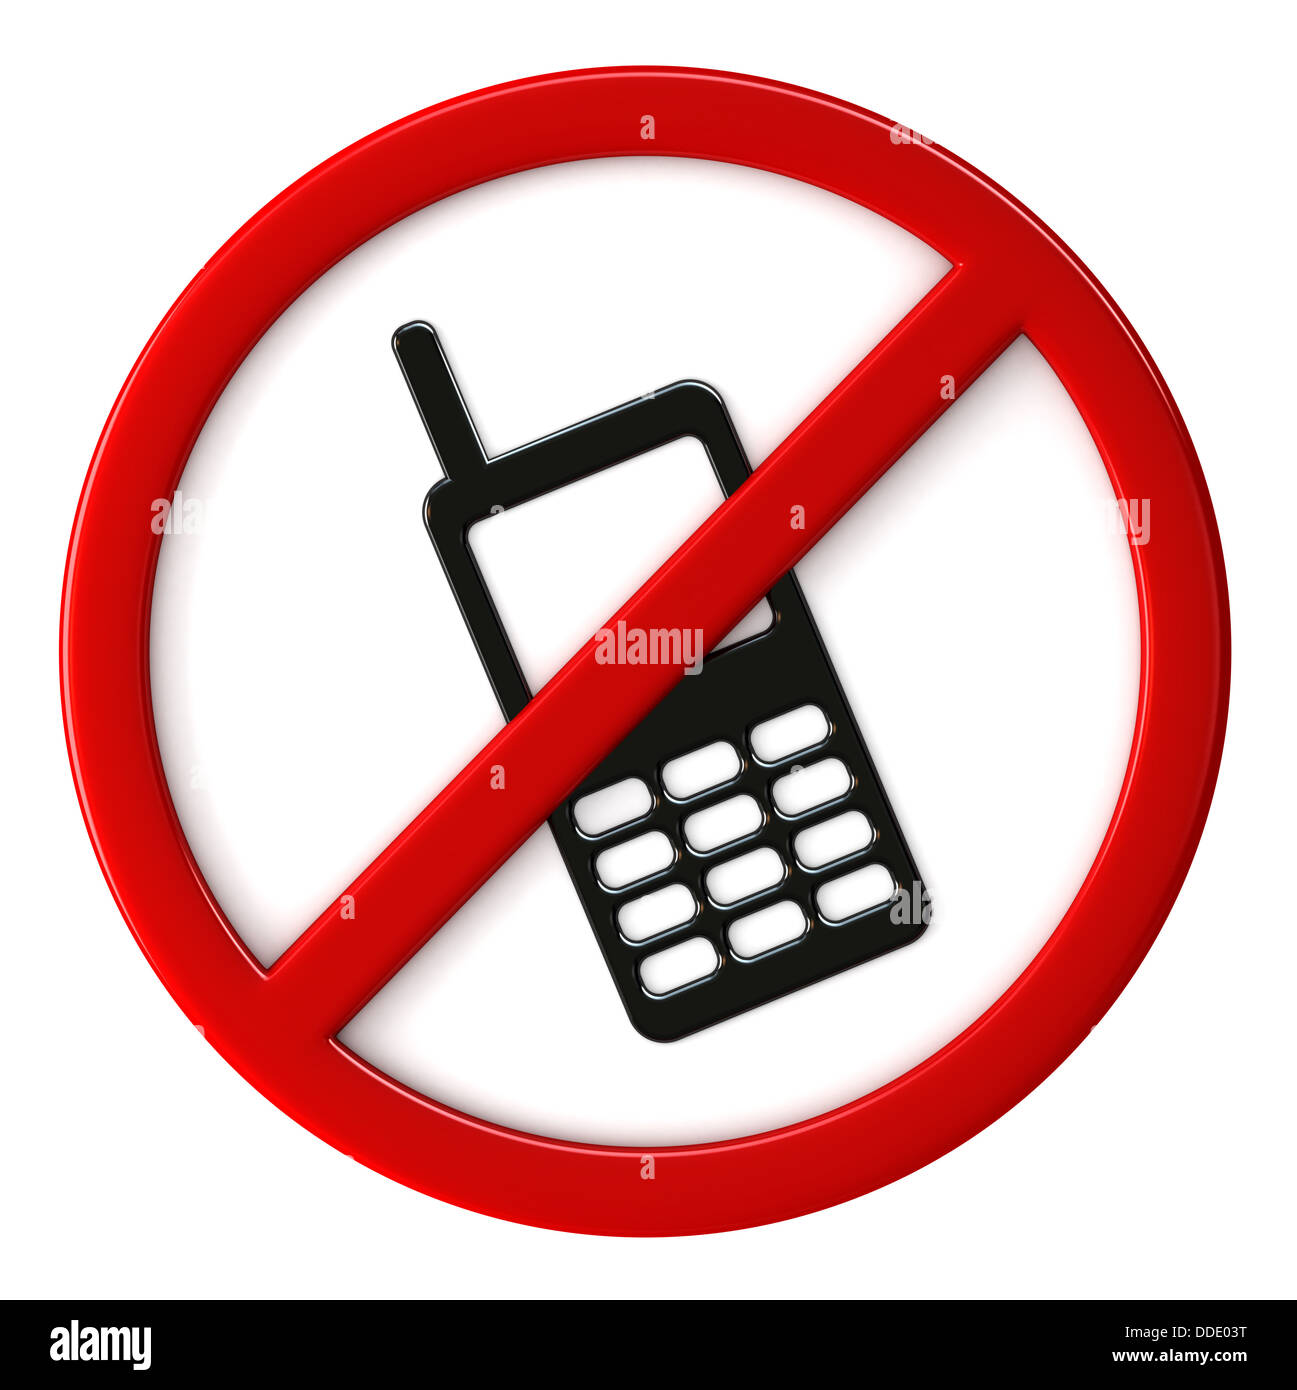 Cell phones not allowed sign Stock Photo: 59929068 - Alamy